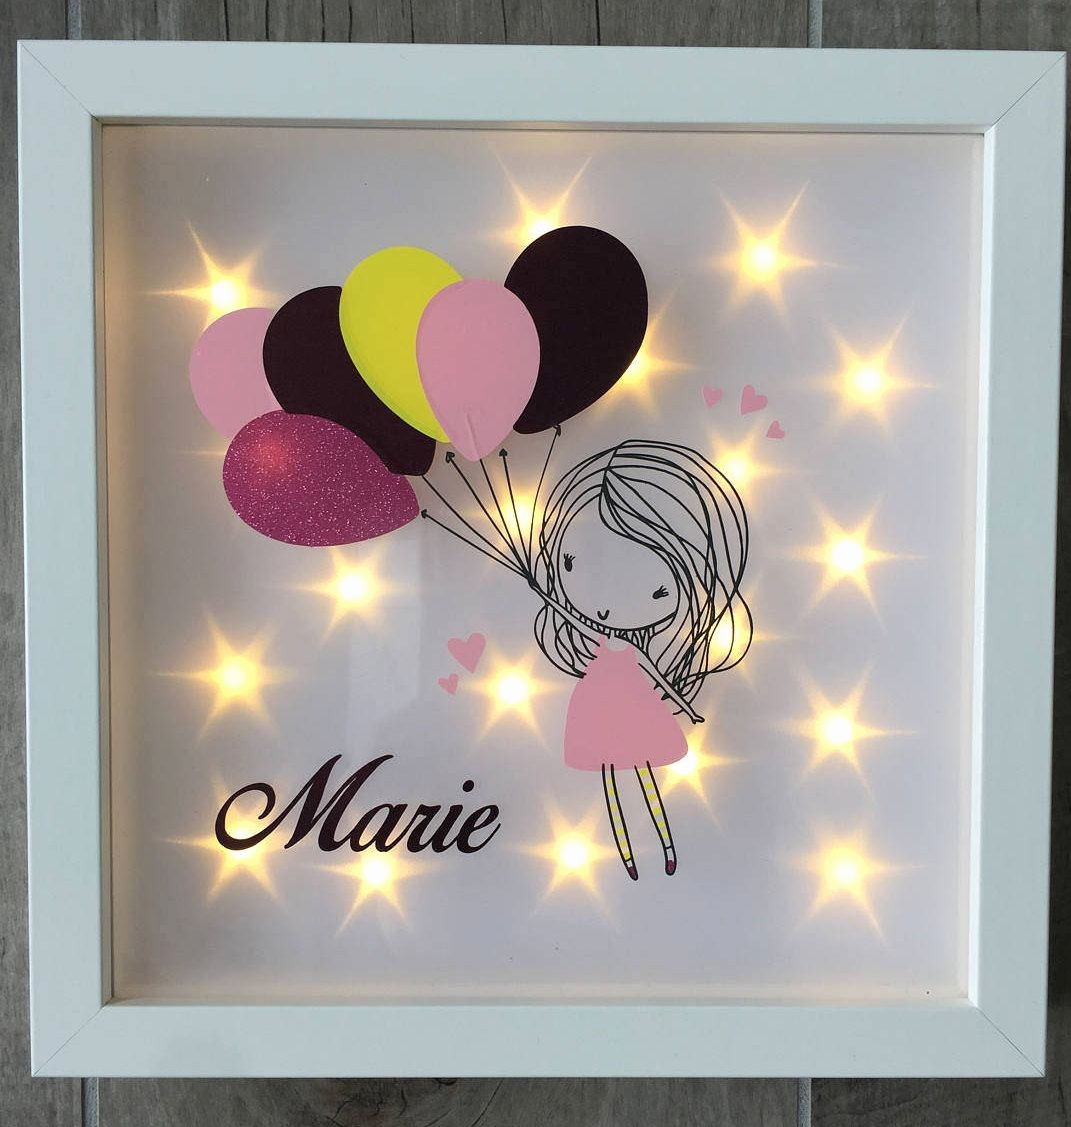 Geschenke Zur Taufe Selber Basteln Genial Illuminated Picture Frame with Balloon Girl and Name Night Light